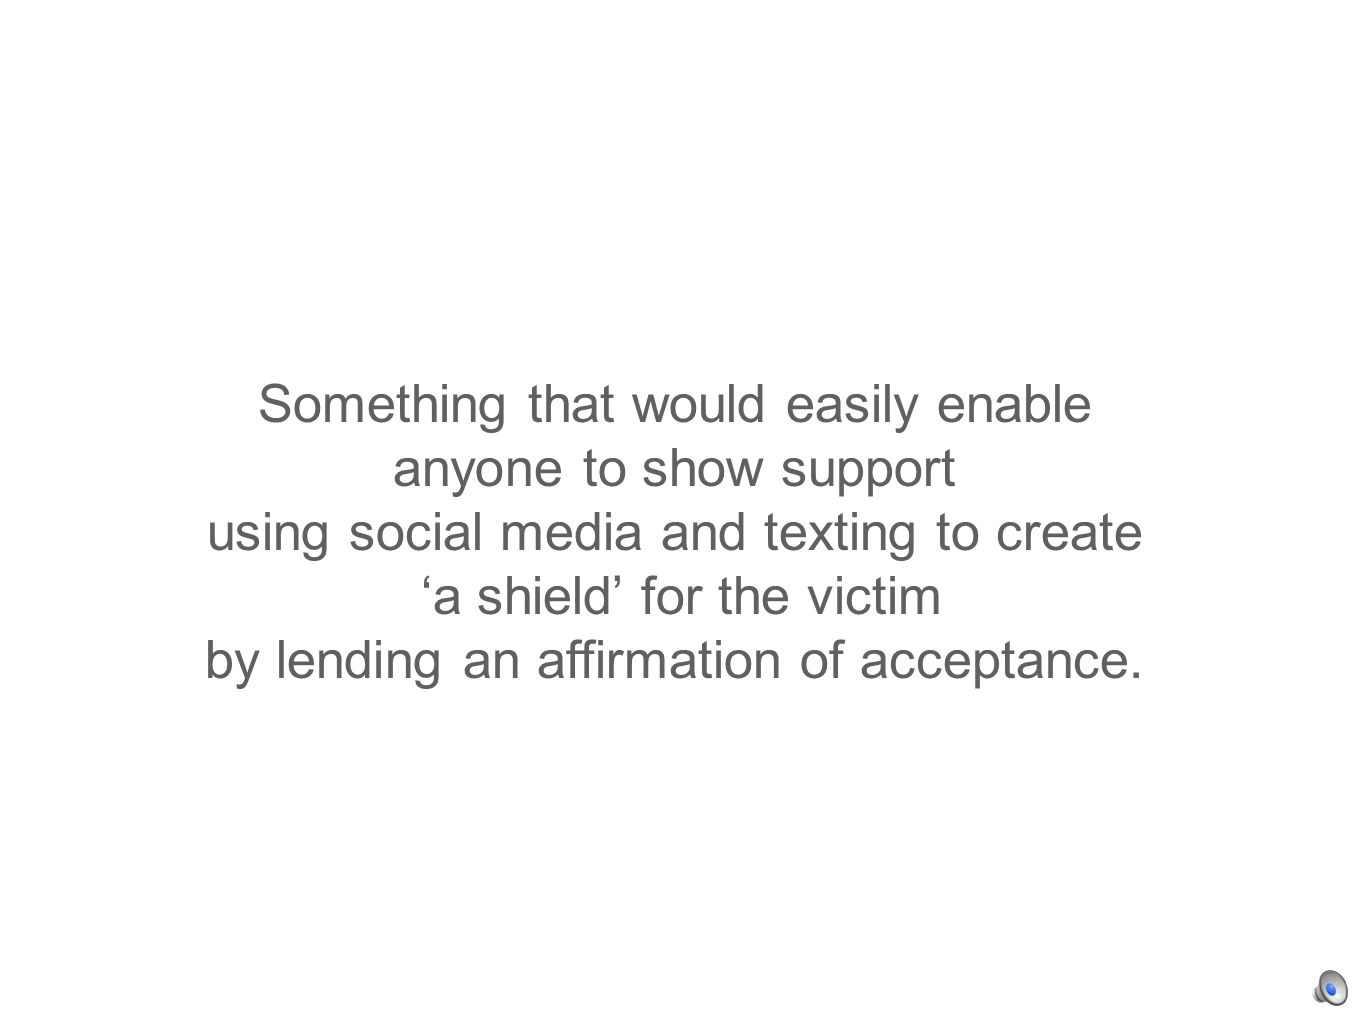 Something that would easily enable anyone to show support using social media and texting to create a shield for the victim by lending an affirmation of acceptance.